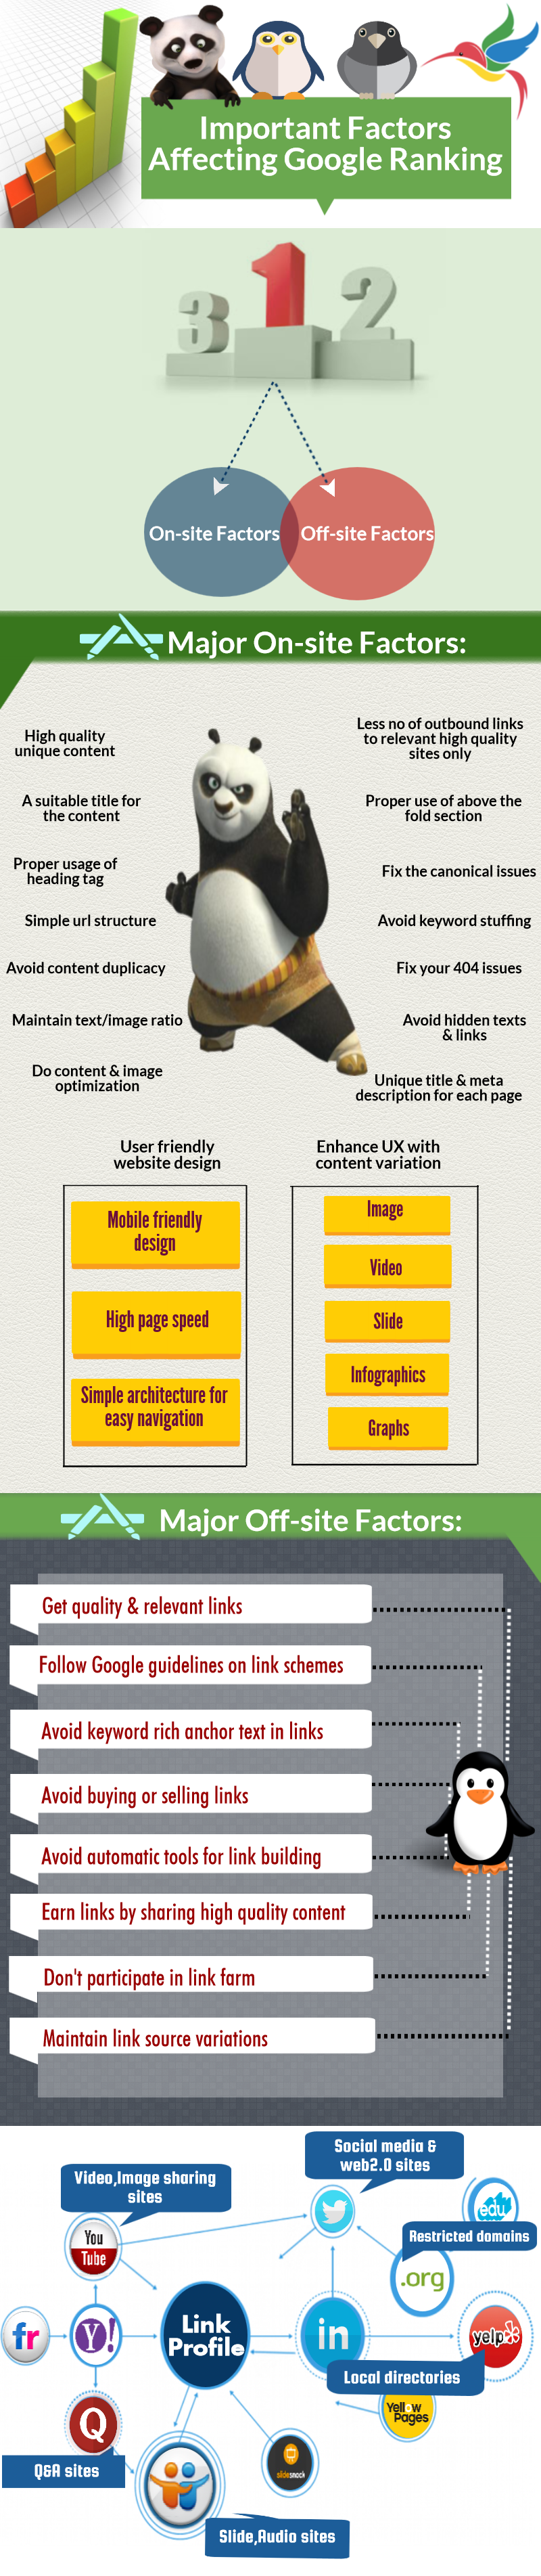 Important Factors Affecting Google Ranking